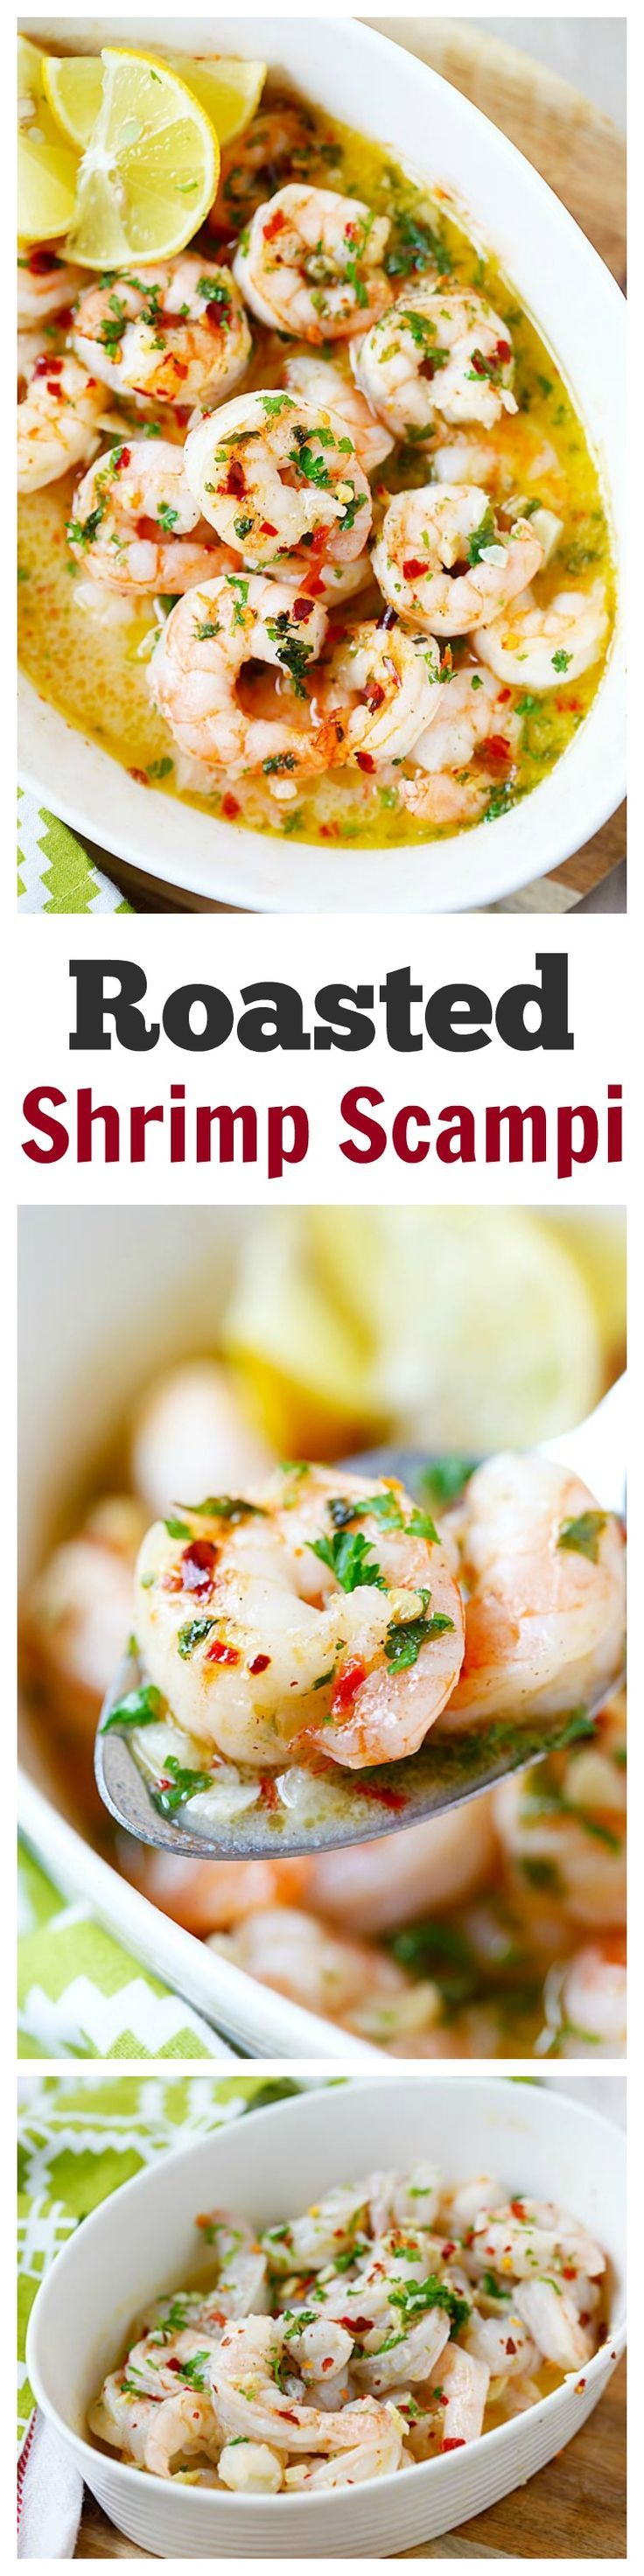 Roasted Shrimp Scampi – the easiest and BEST roasted shrimp scampi ever. 5 mins to prep, 5 mins in the oven and dinner is ready for the entire family   http://rasamalaysia.com